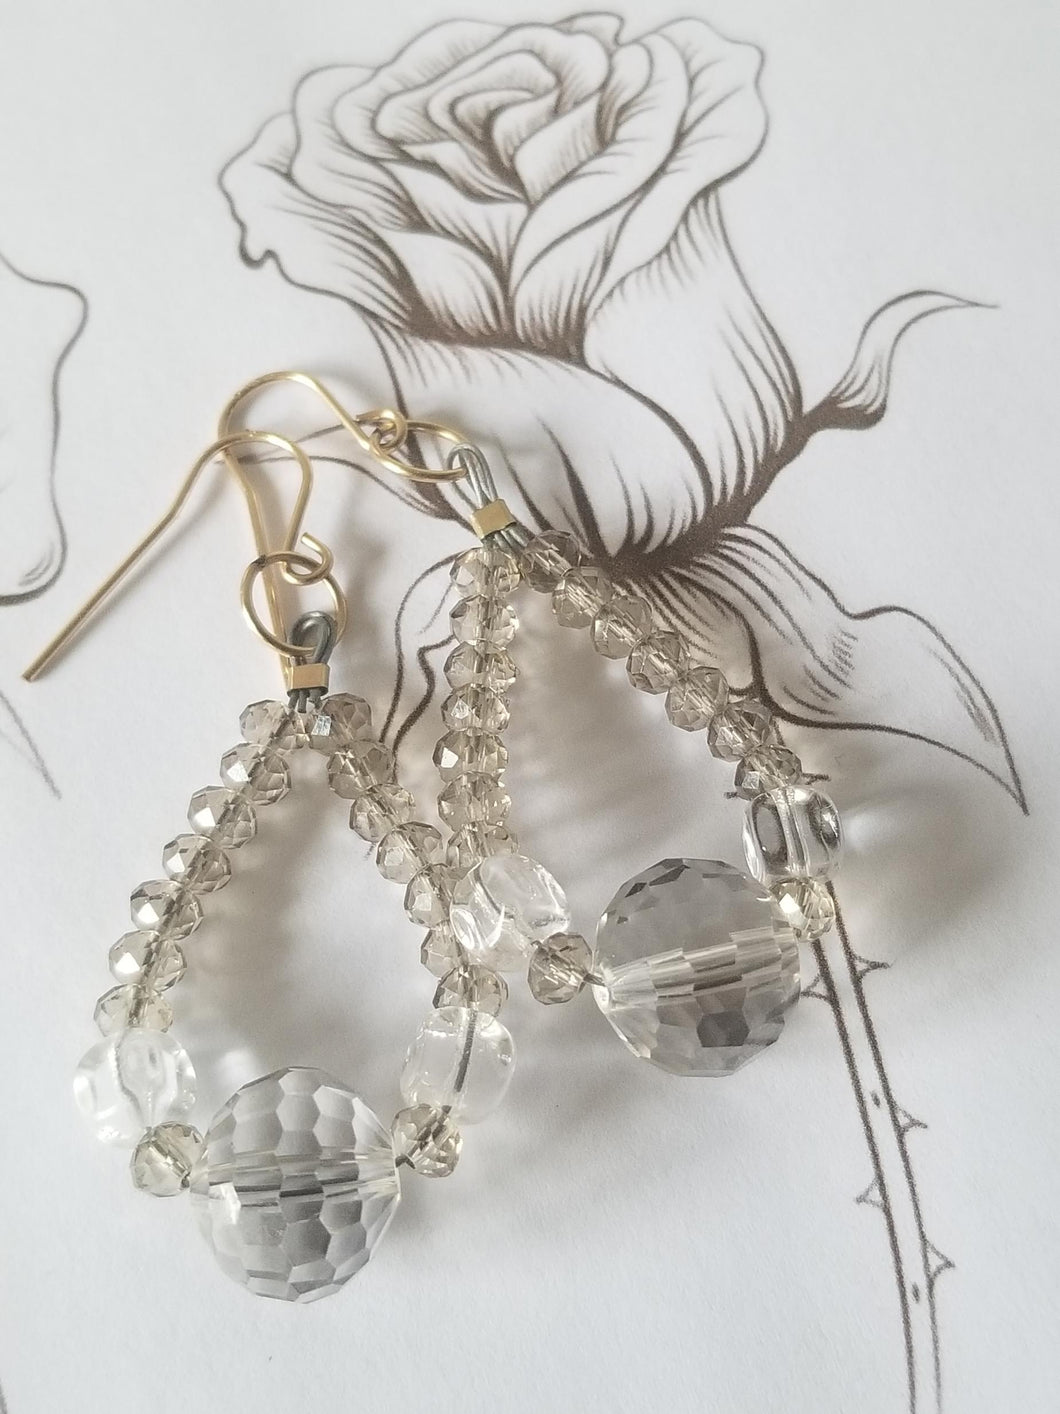 Dynasty Crystal Drop Earrings on Gold-Filled Wires - Sheryl Heading Designs